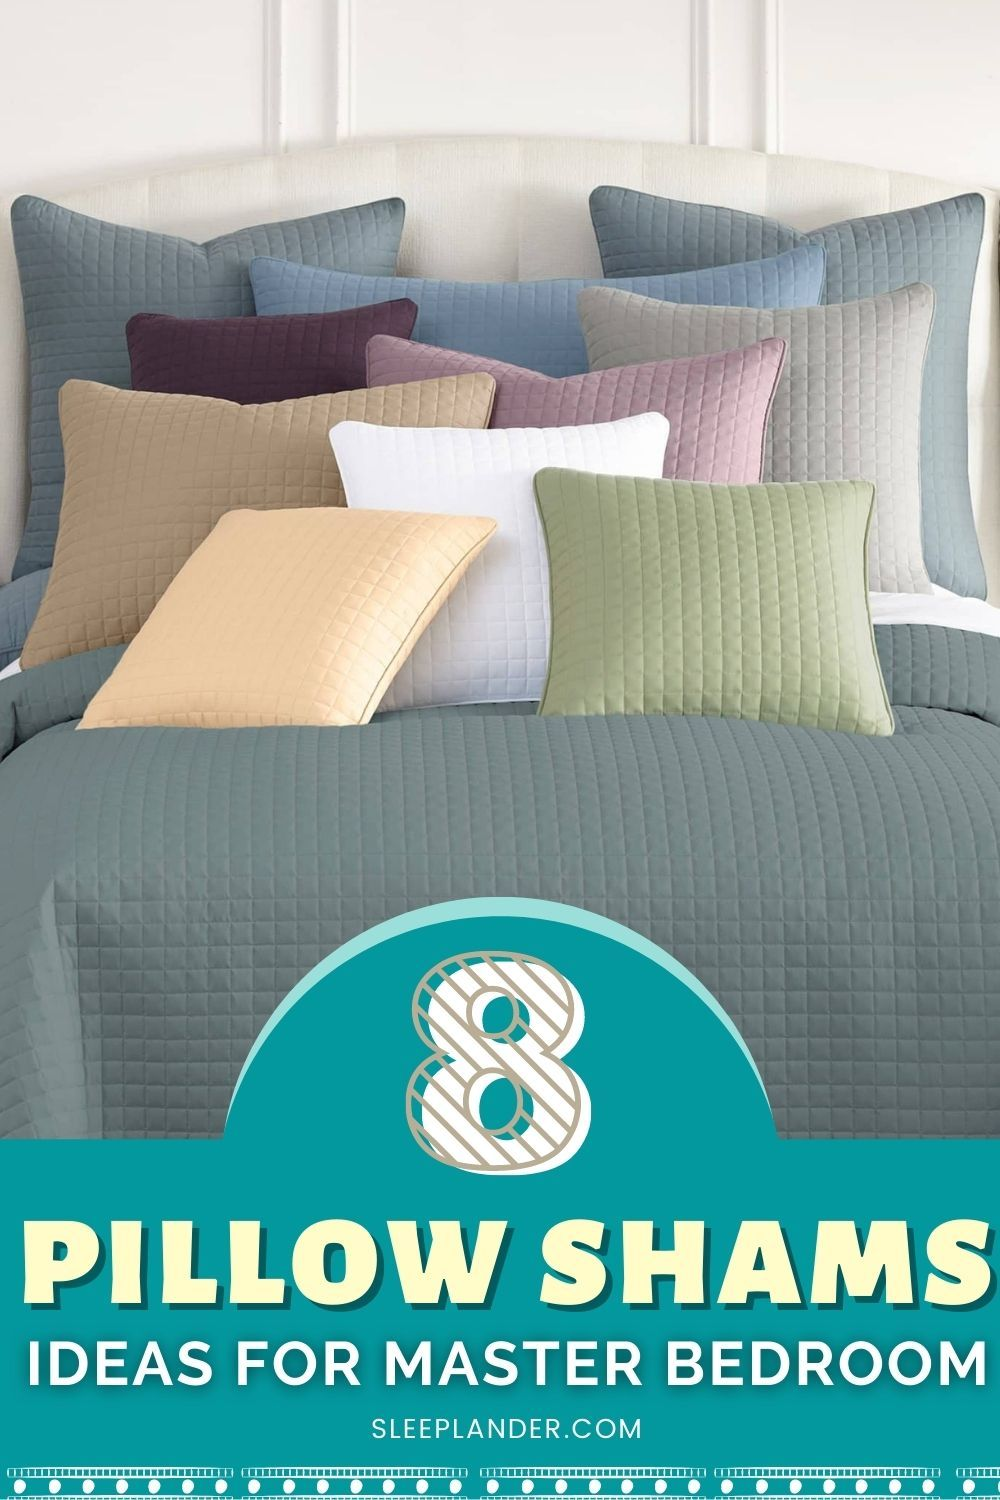 Looking for pillows shams ideas and inspiration for master bedroom? Read our sleep blog Sleeplander.com to learn more pillow shams decor #homedecor #Sleeplander #bedroomdecorideas